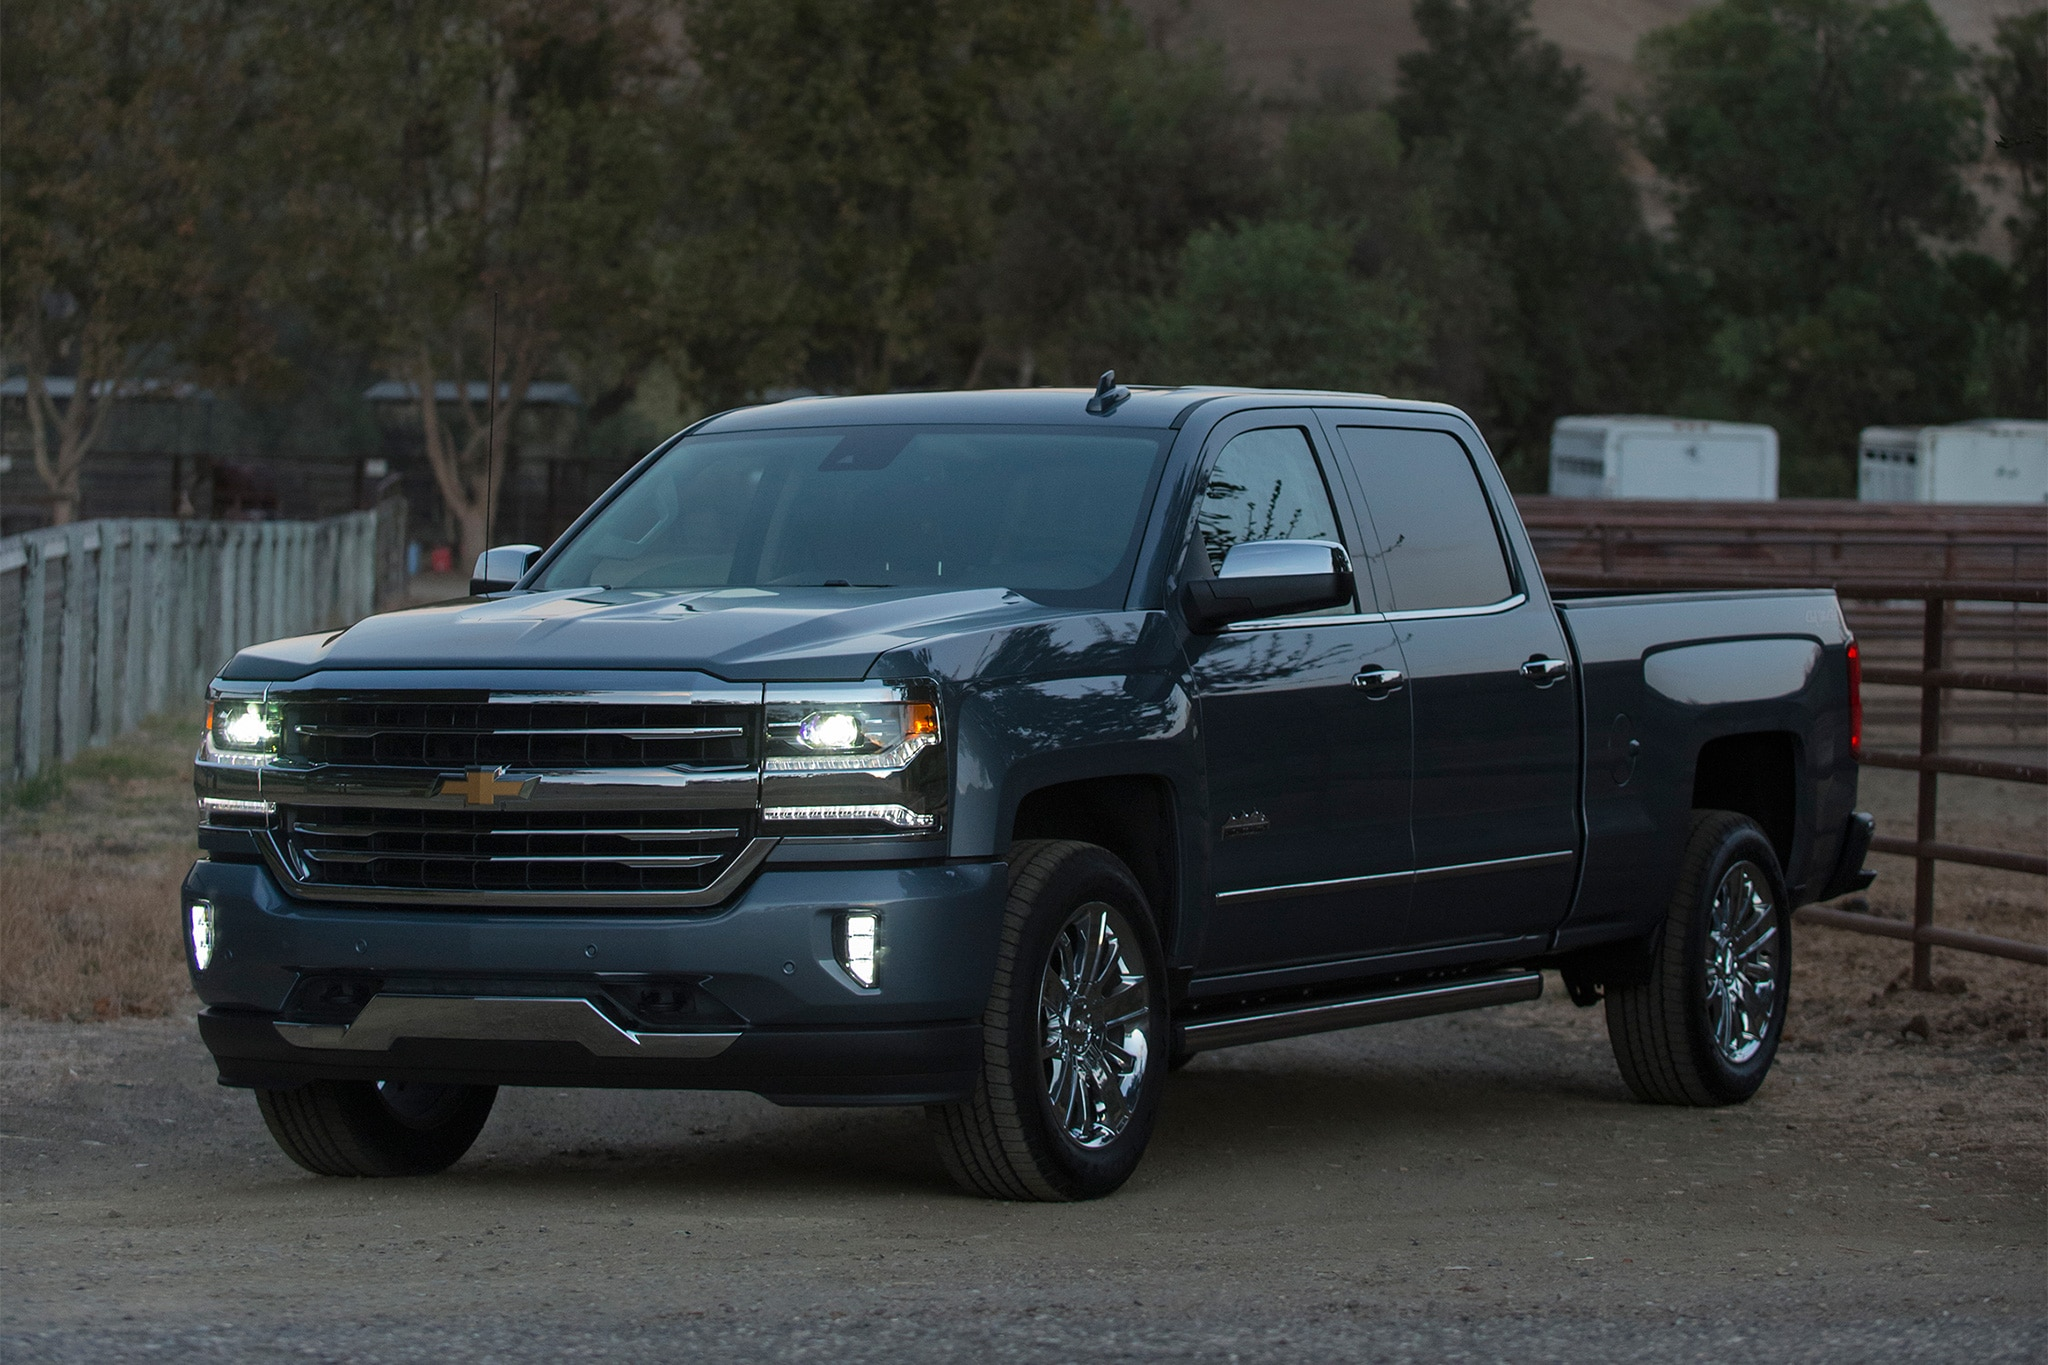 2016 chevrolet silverado rally edition debuts in texas automobile magazine. Black Bedroom Furniture Sets. Home Design Ideas